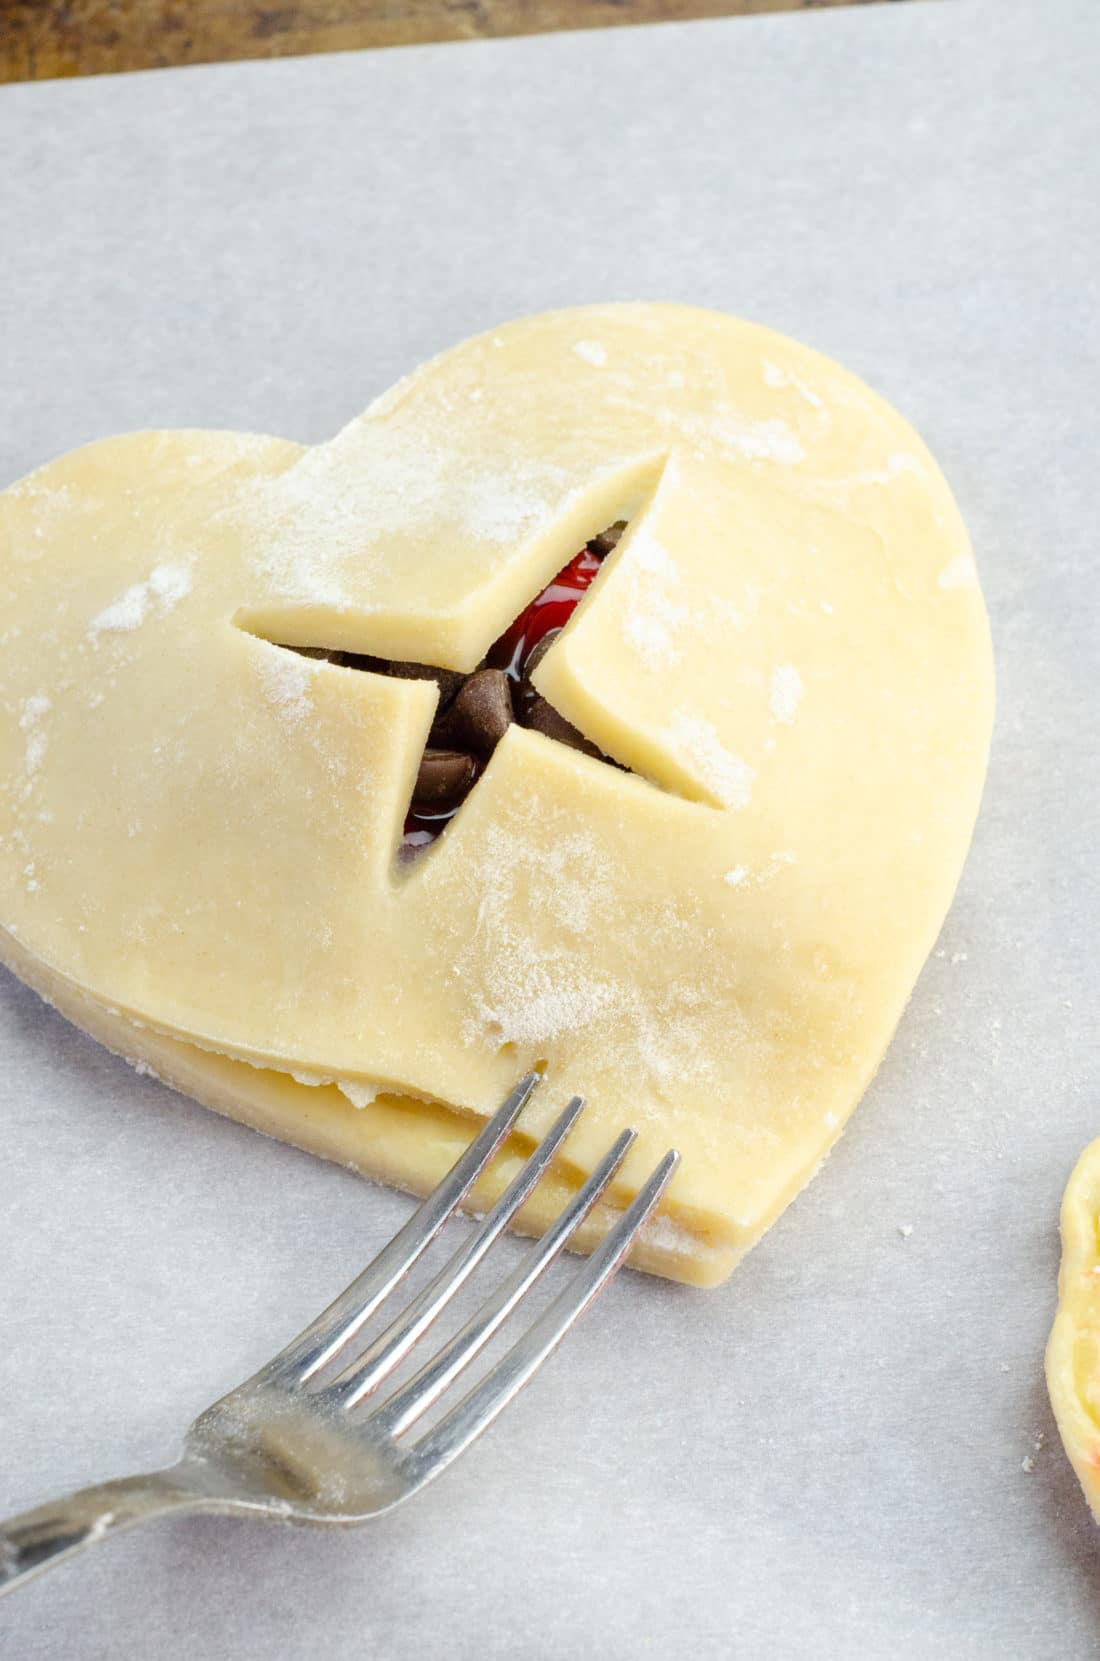 Chocolate Cherry Hand Pies Being Closed. Say I heart you to someone special this Valentine's Day with a delicious homemade treat. Try my super easy to make Chocolate Cherry Hand Pies which include a from scratch buttery flaky pie crust.